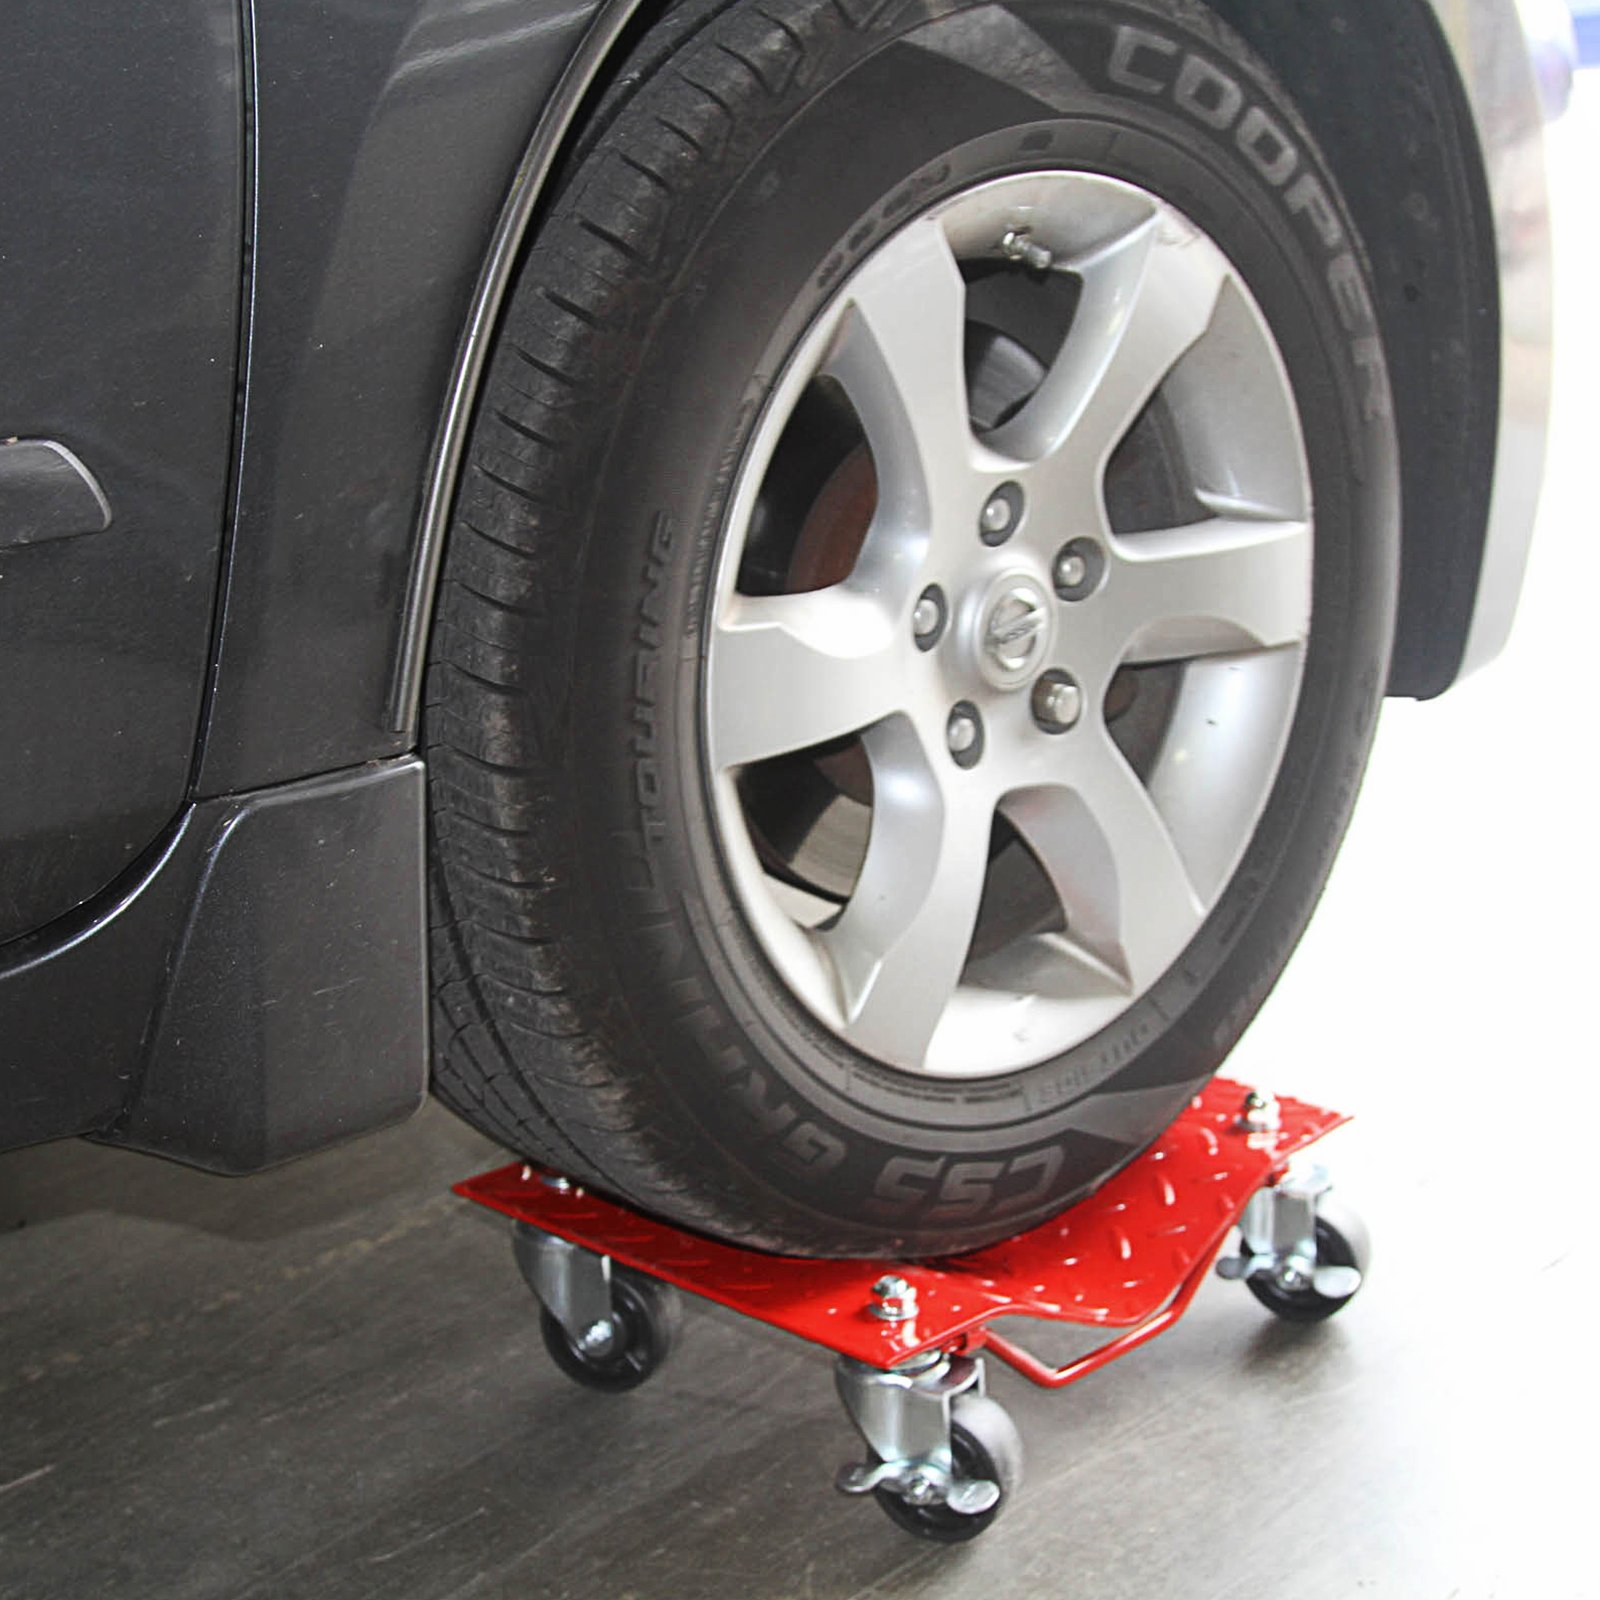 4 - Red 12'' Tire Premium Skates Wheel Car Dolly Ball Bearings Skate Makes Moving A Car Easy Furniture Movers by Red Hound Auto (Image #3)